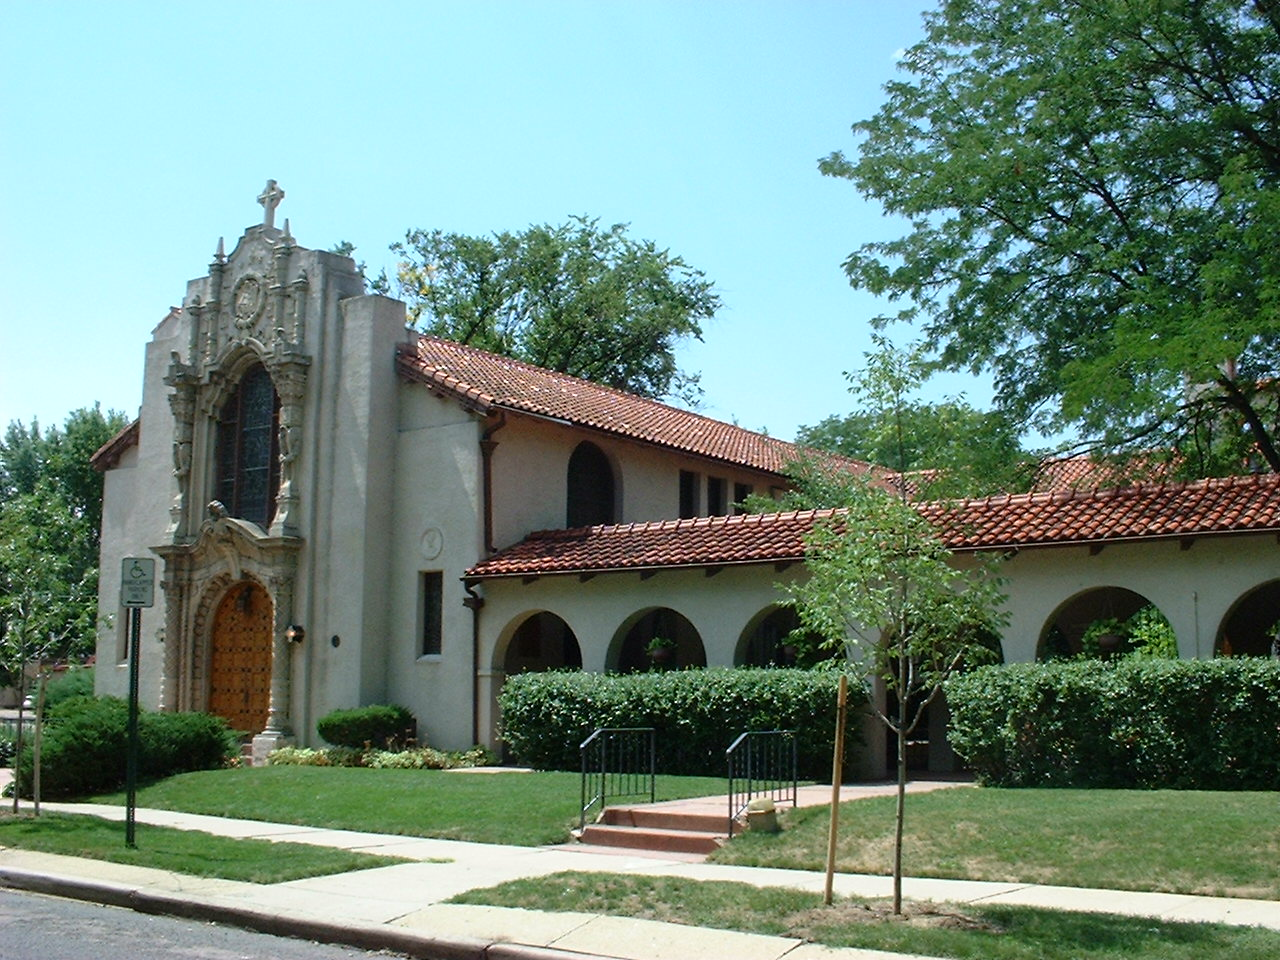 Color photograph of Saint Thomas Episcopal Church in Denver.